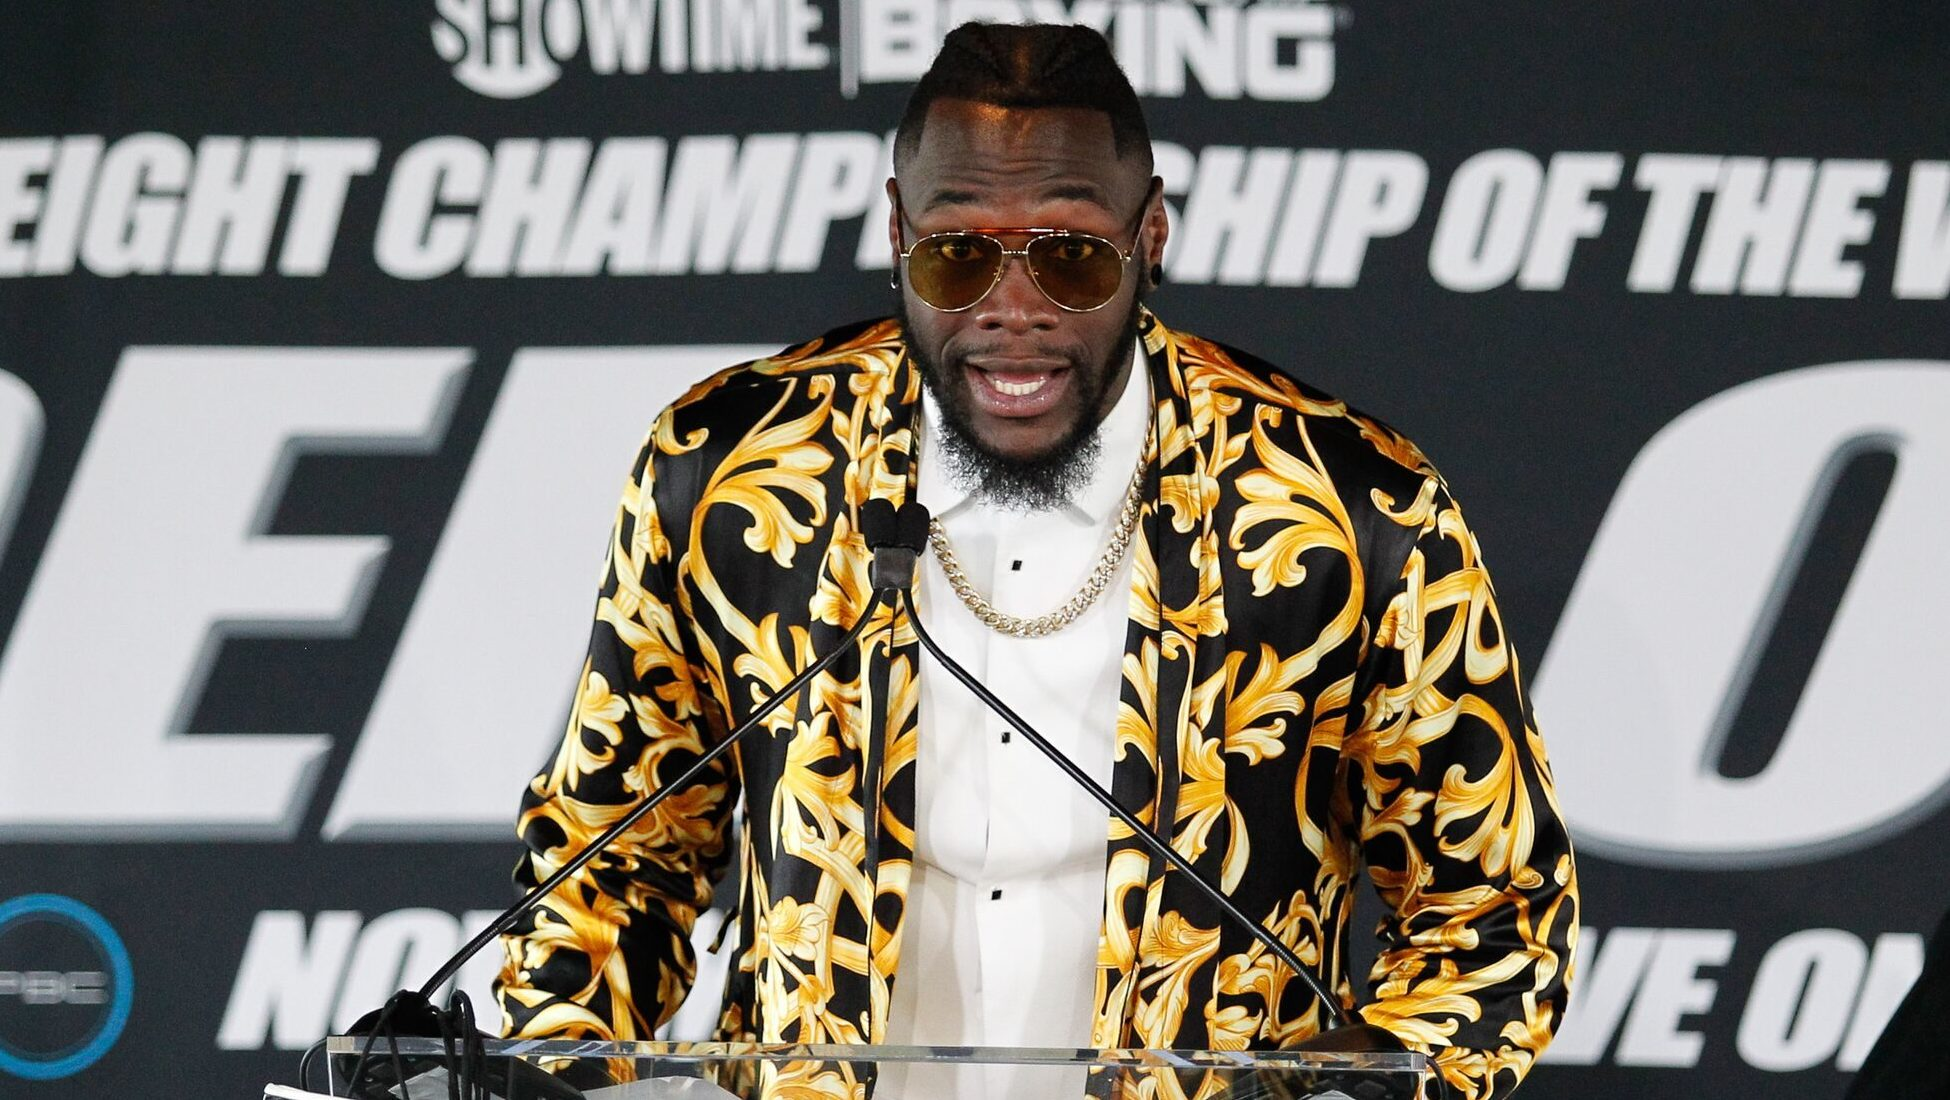 showtime announces early 2018 boxing schedule | fight sports